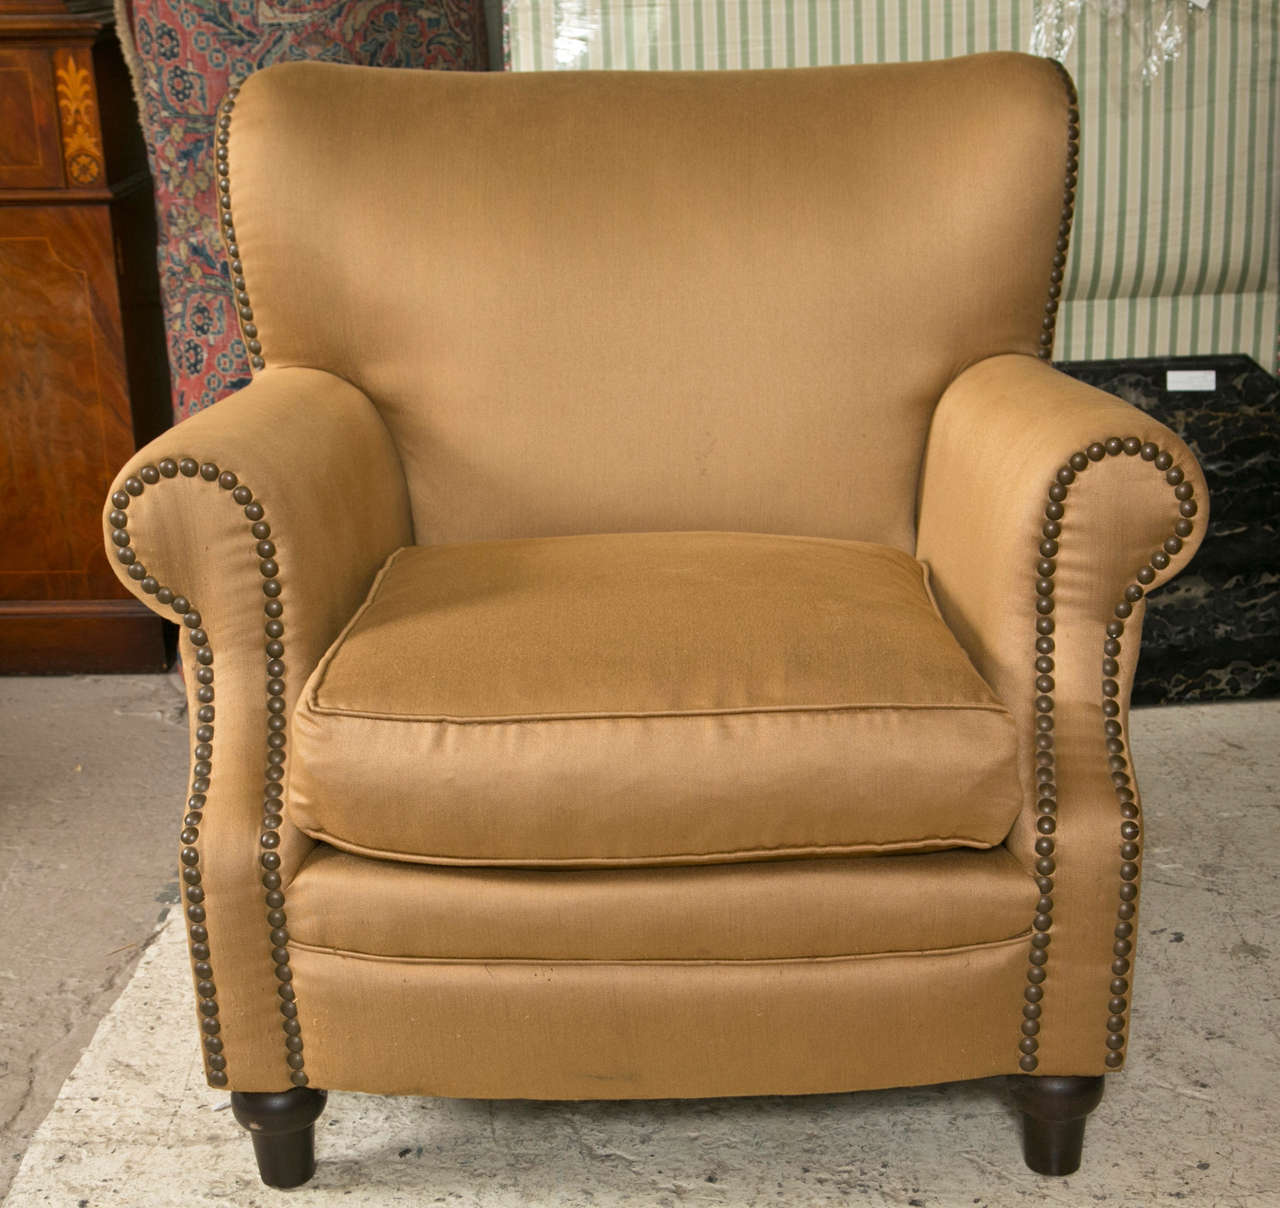 Pair of overstuffed oversized arm lounge chairs at 1stdibs for Overstuffed armchair